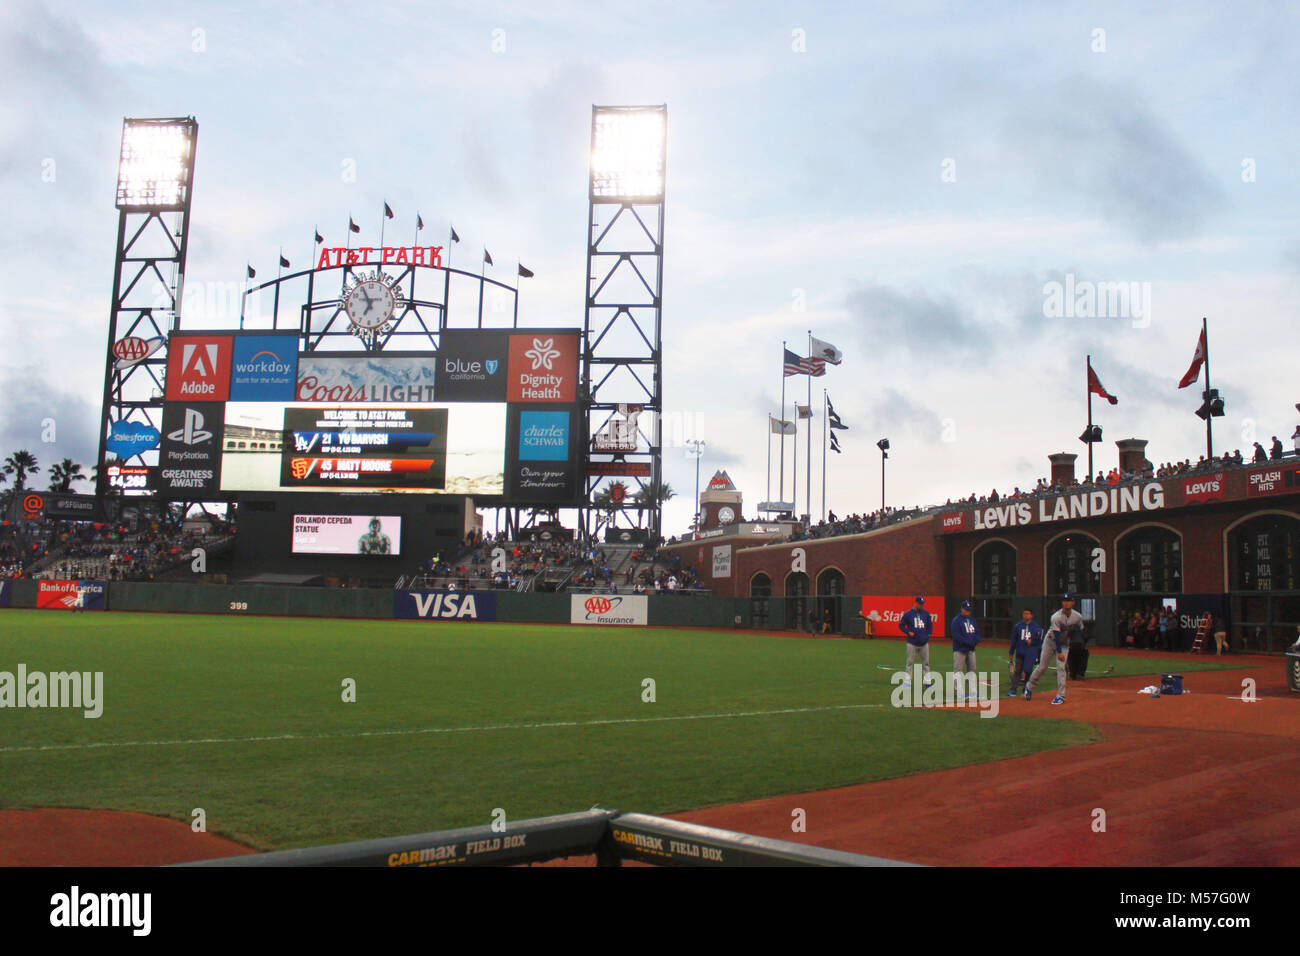 At&t Park - Stock Image